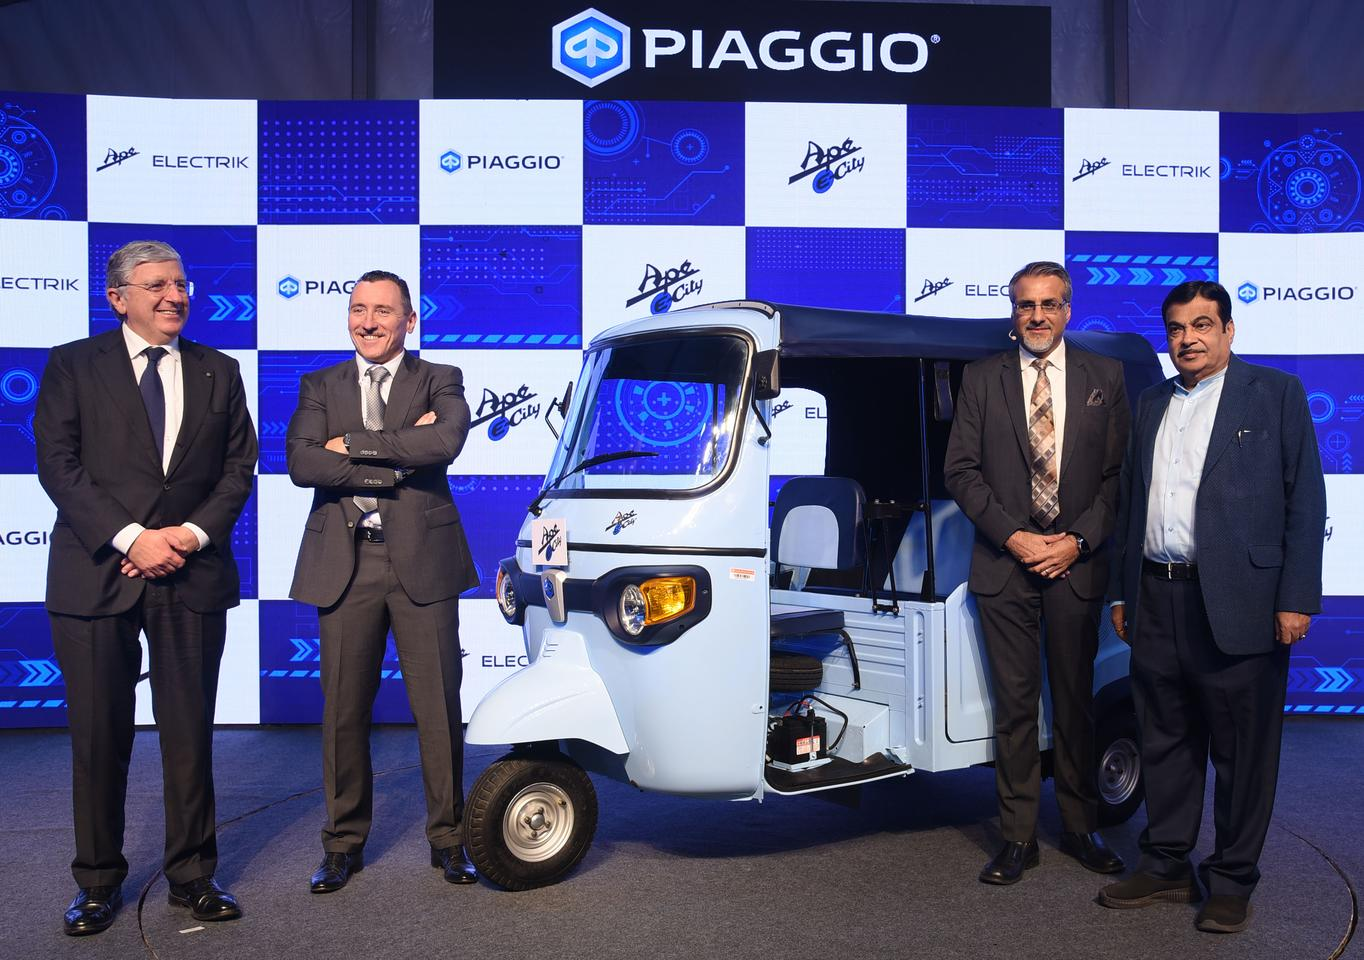 Piaggio describes the Ape E-City as its entry into the Indian electric commercial vehicle market